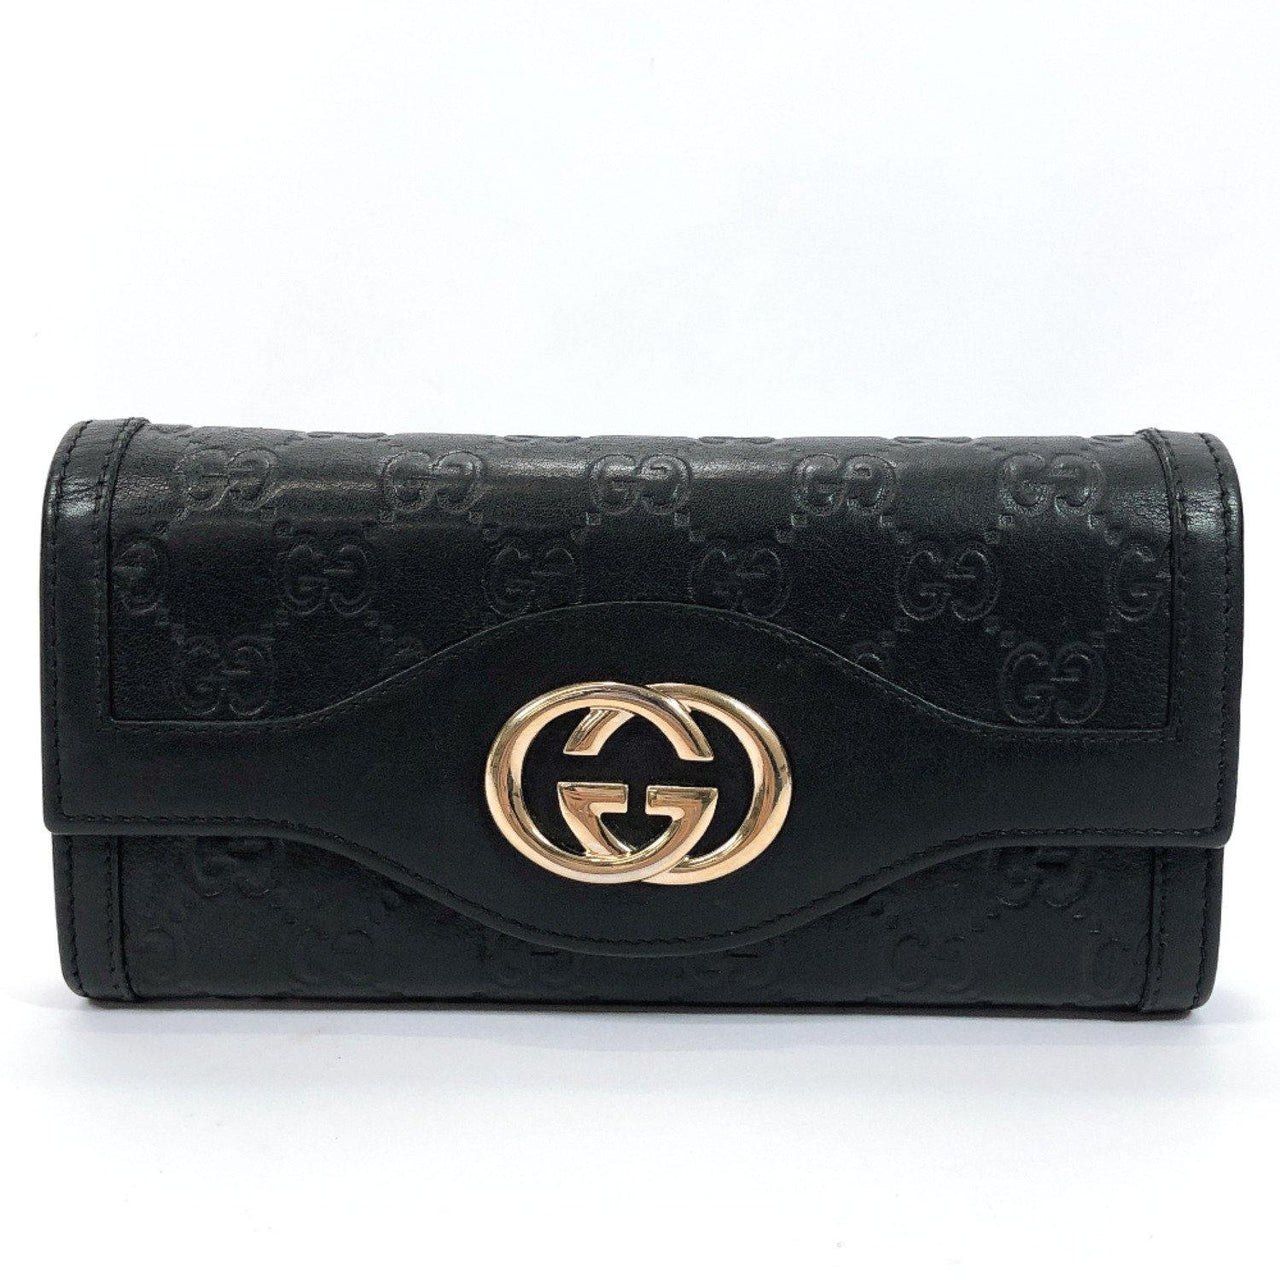 GUCCI purse 282431 Interlocking G Sima leather black Women Used - JP-BRANDS.com